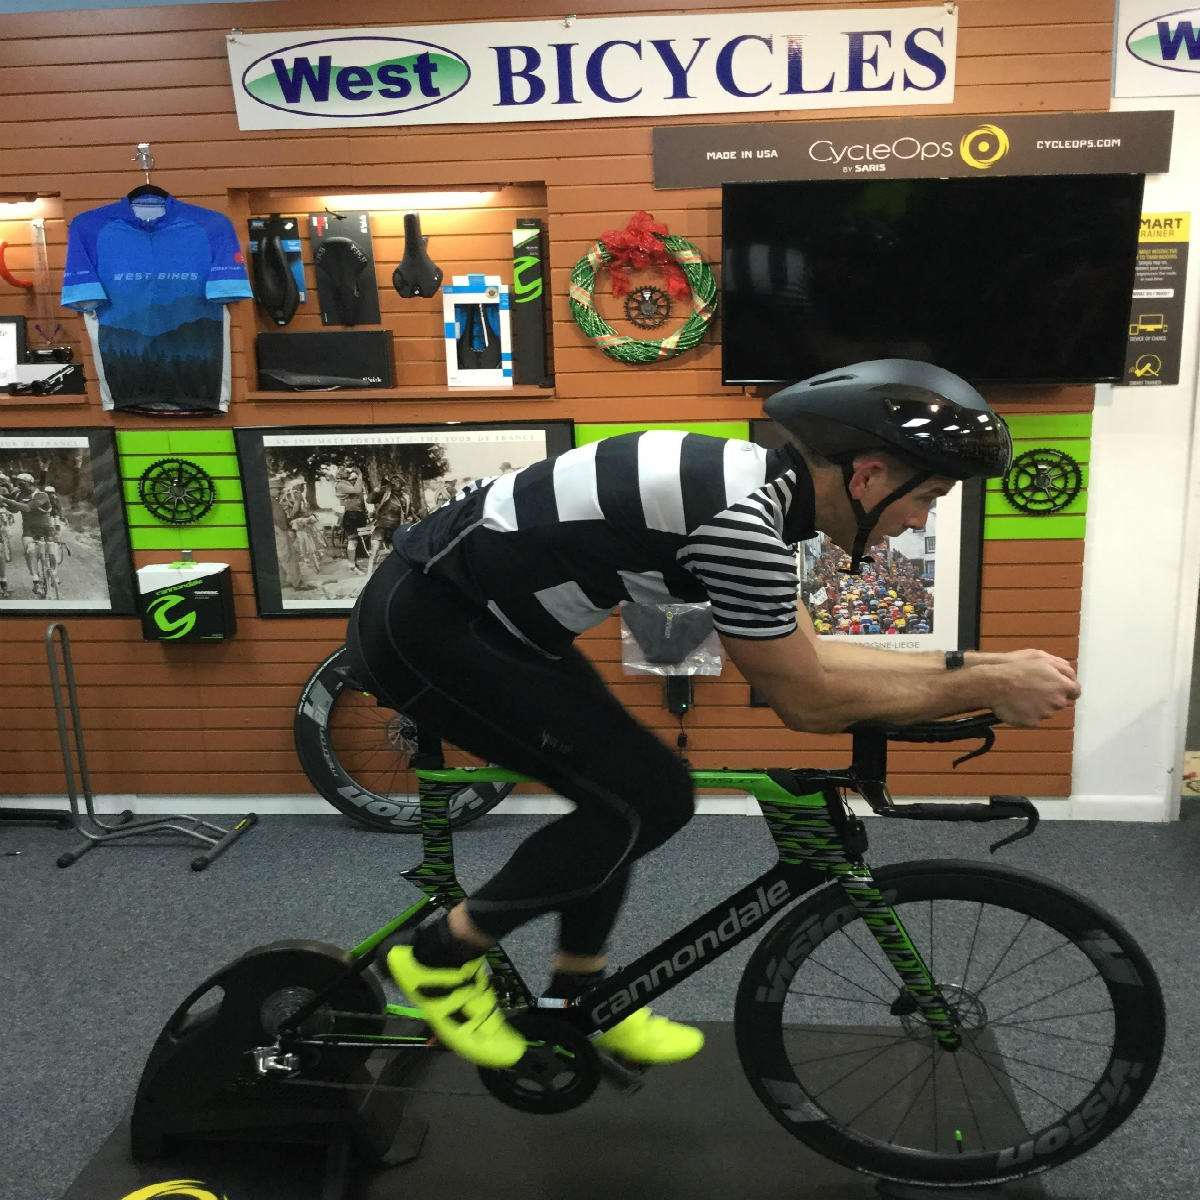 b1453faae33 Knoxville Bike Shop - West Bicycles | Cannondale | Farragut